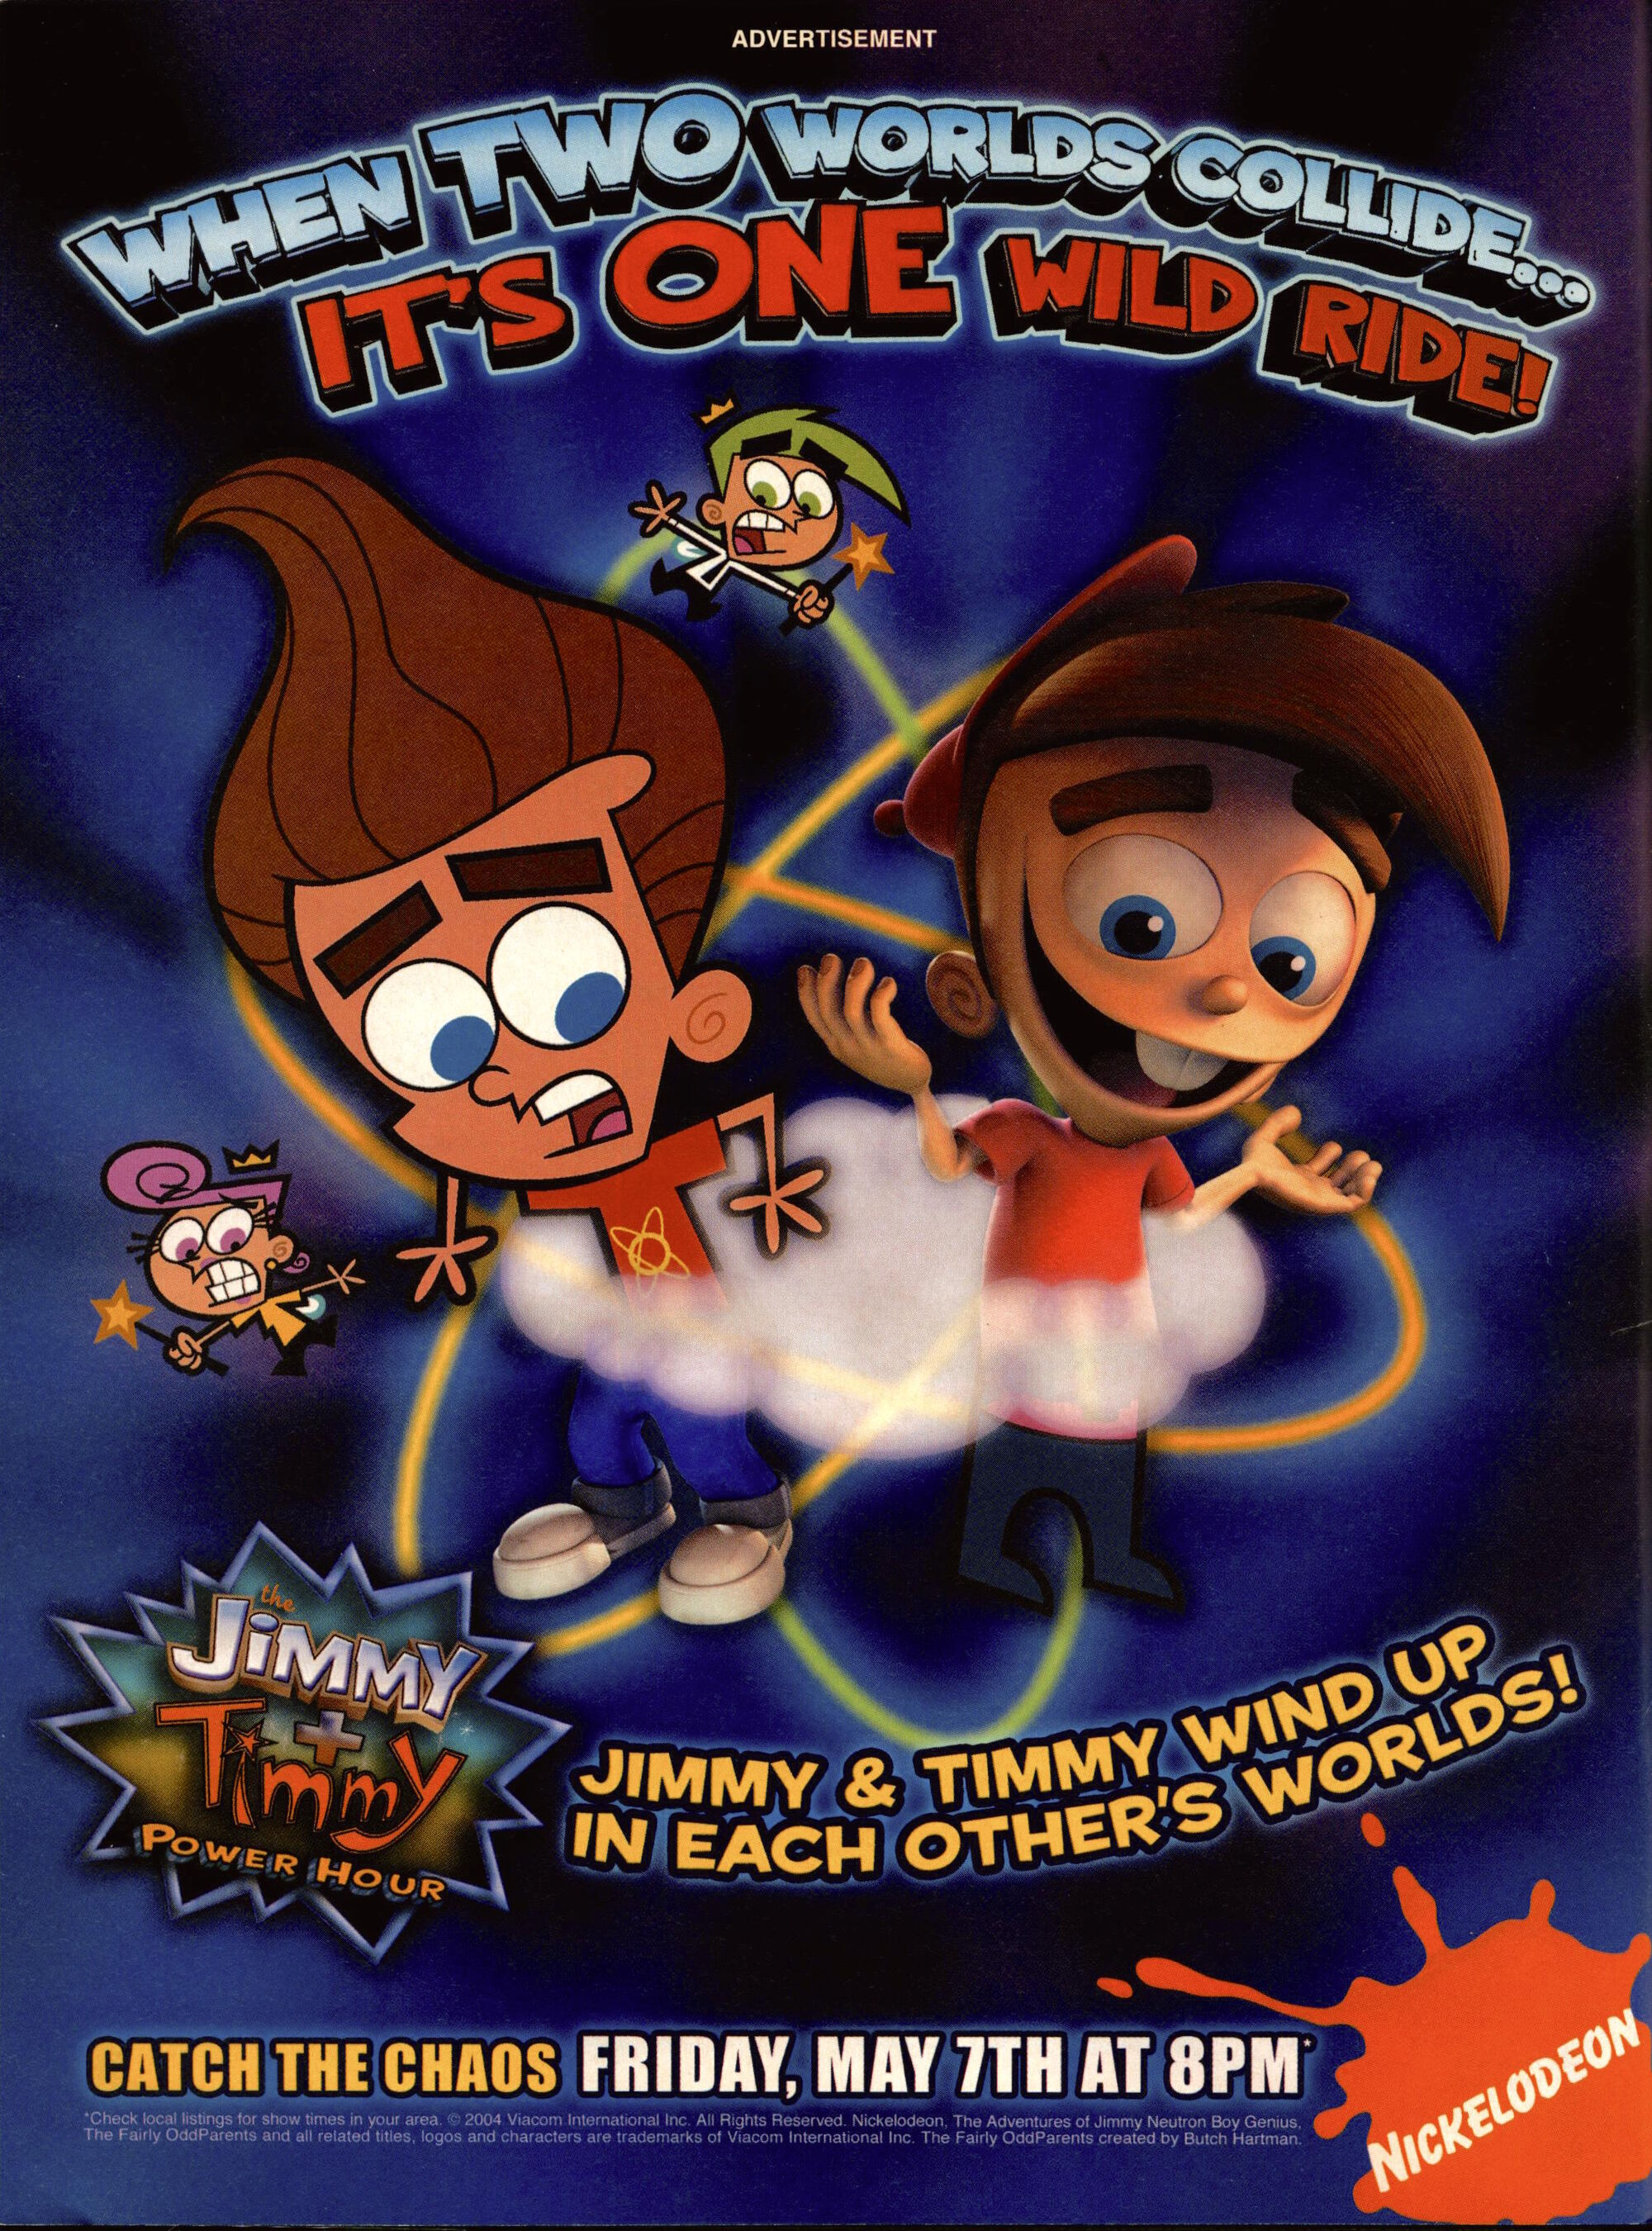 image the jimmy timmy power hour posterjpg